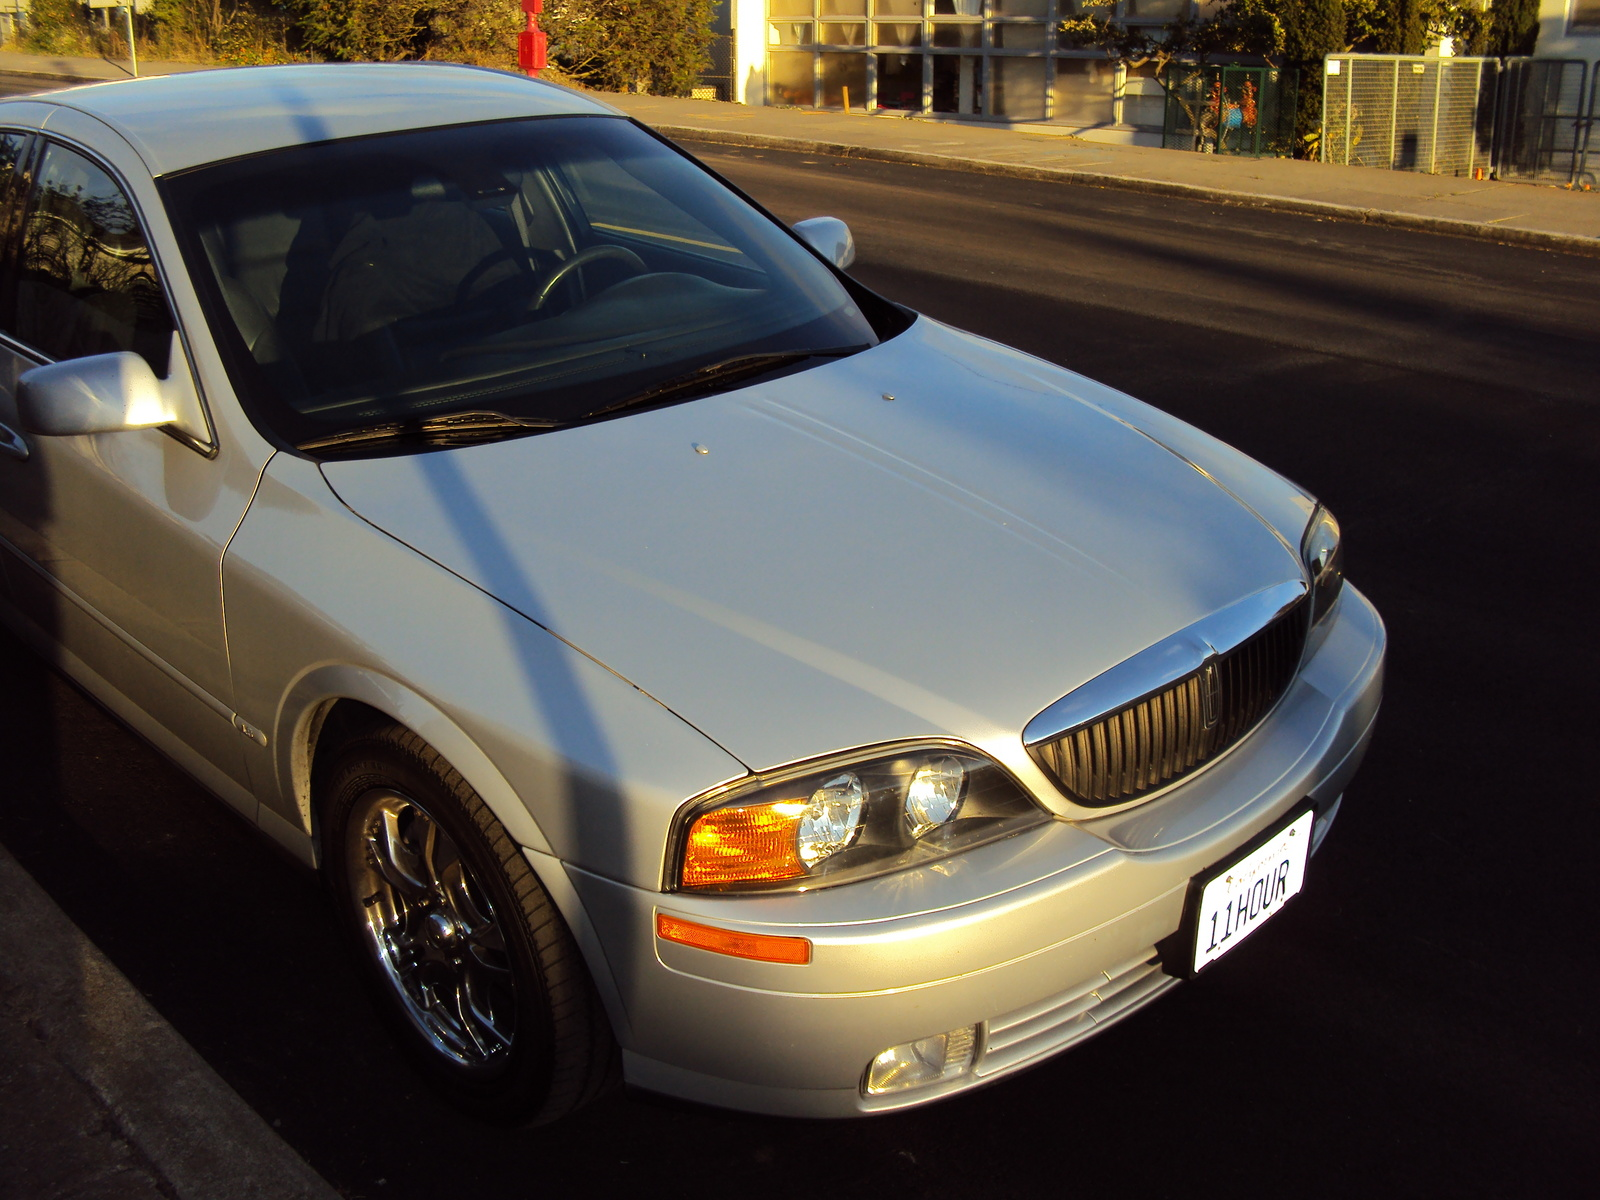 Lincoln Ls V Pic on Lincoln Ls For Sale Cargurus